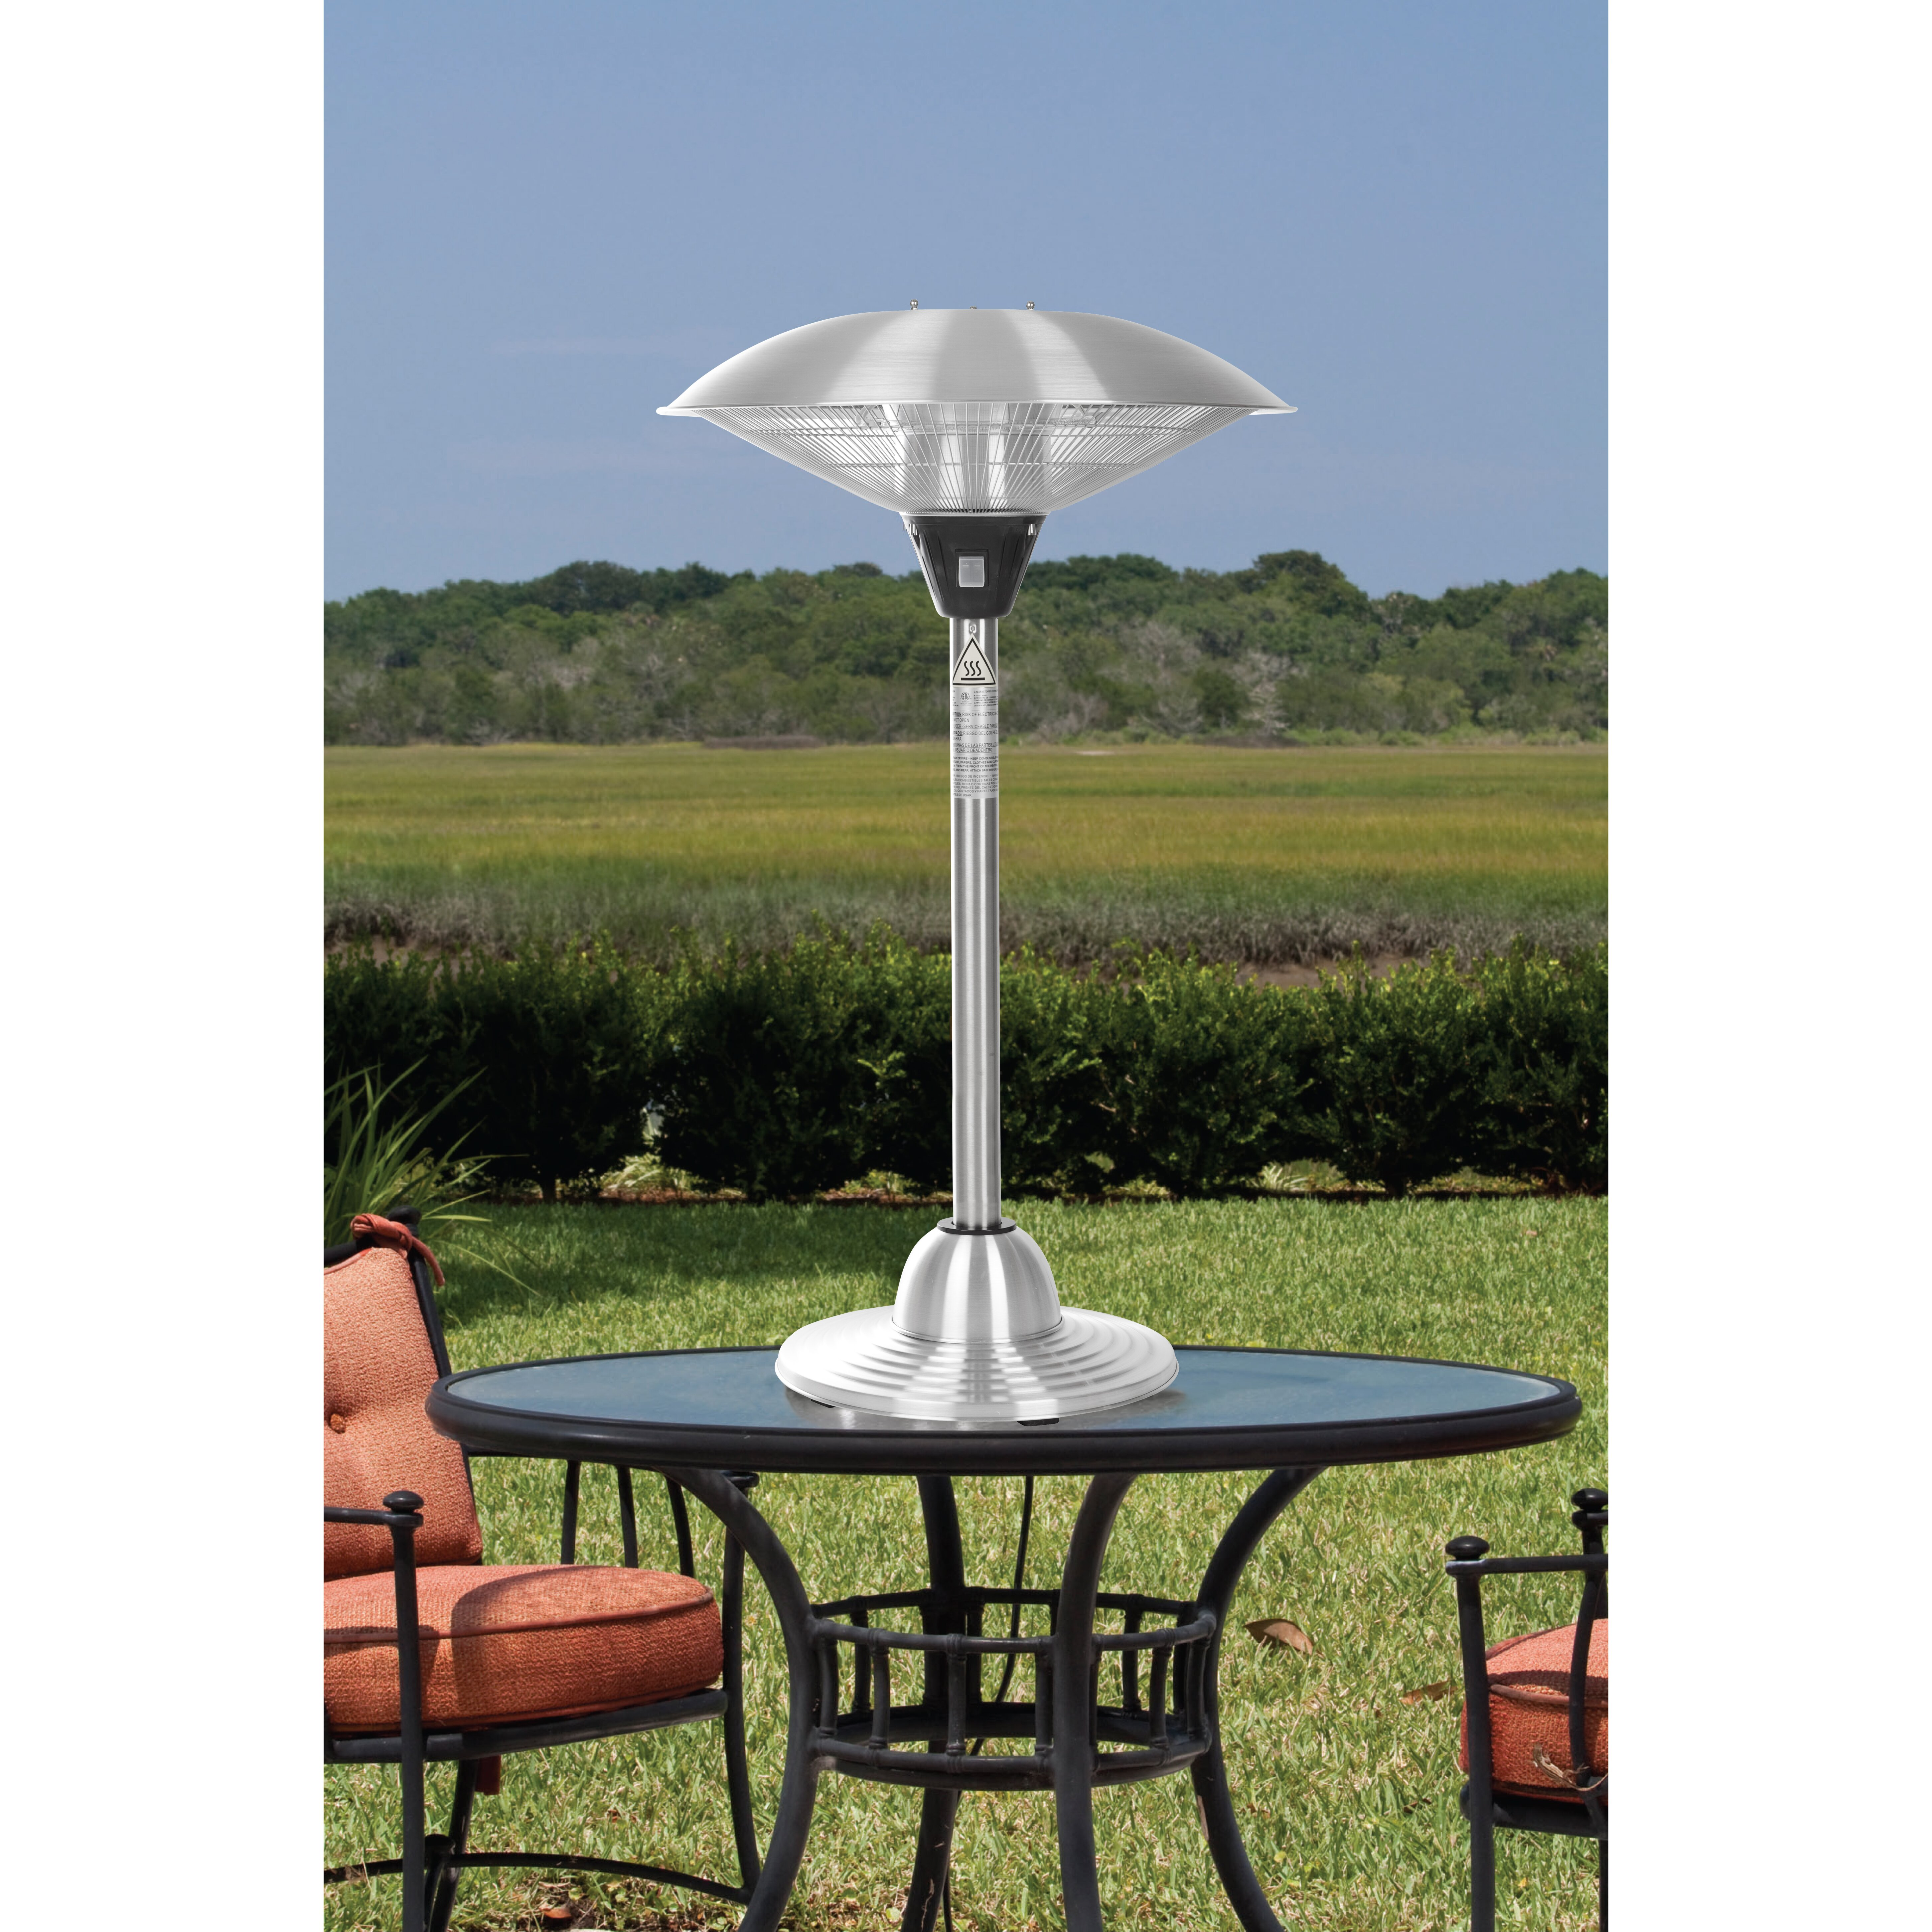 Fire sense stainless steel tabletop electric halogen patio for Tabletop patio heater reviews